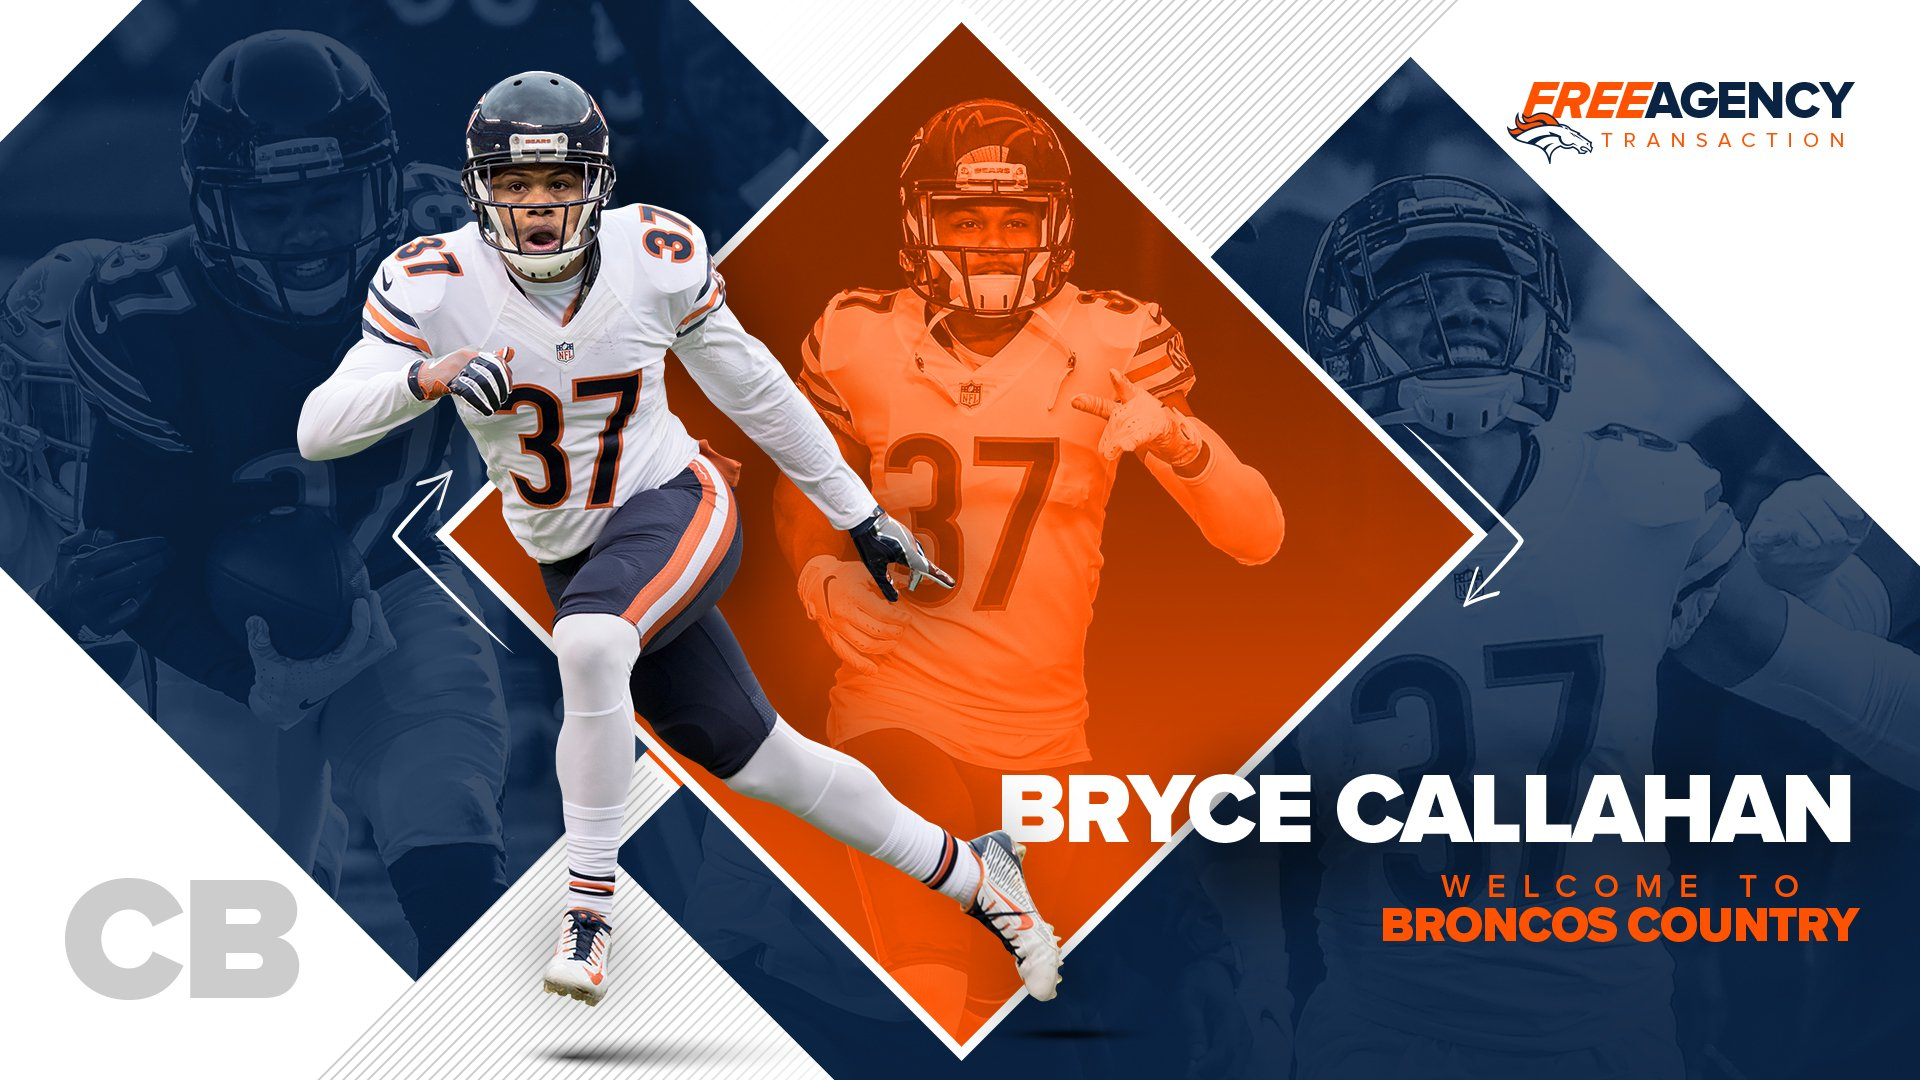 OFFICIAL: We've agreed to terms with CB Bryce Callahan.   �� » https://t.co/LWyZbUmKtn https://t.co/9UgviXAb5g